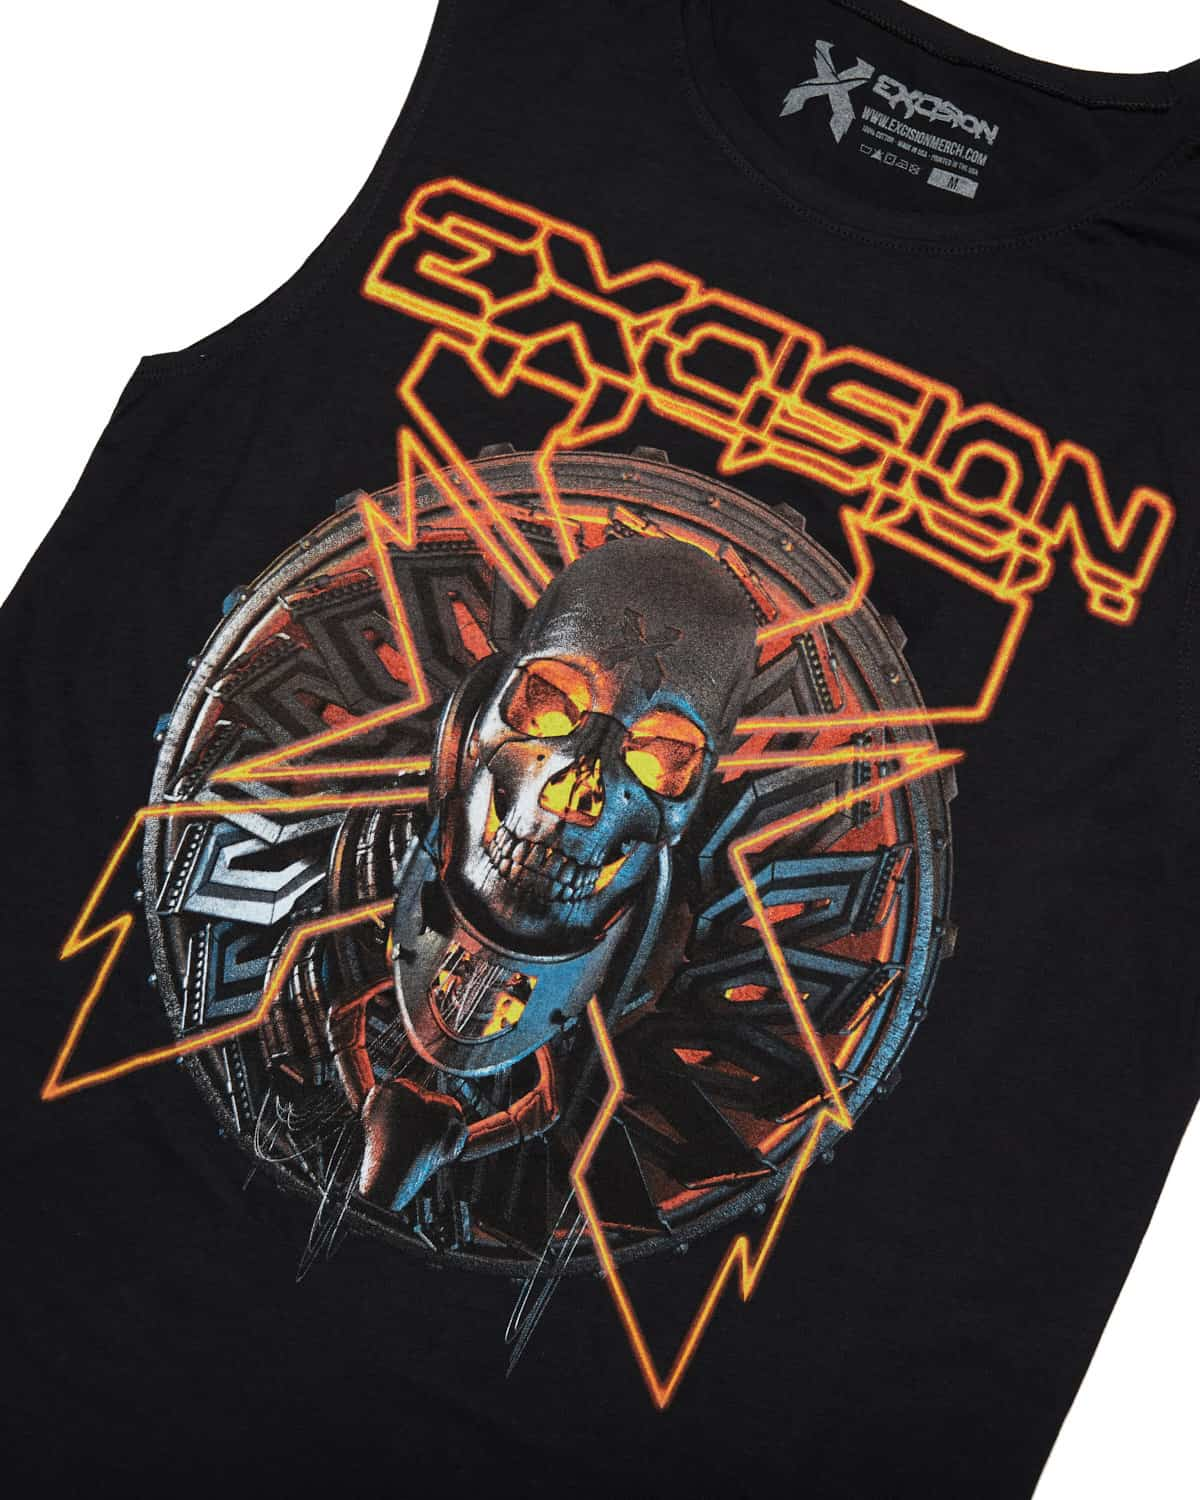 Excision 'Lazer Skull' Unisex Sleeveless T-Shirt - Red